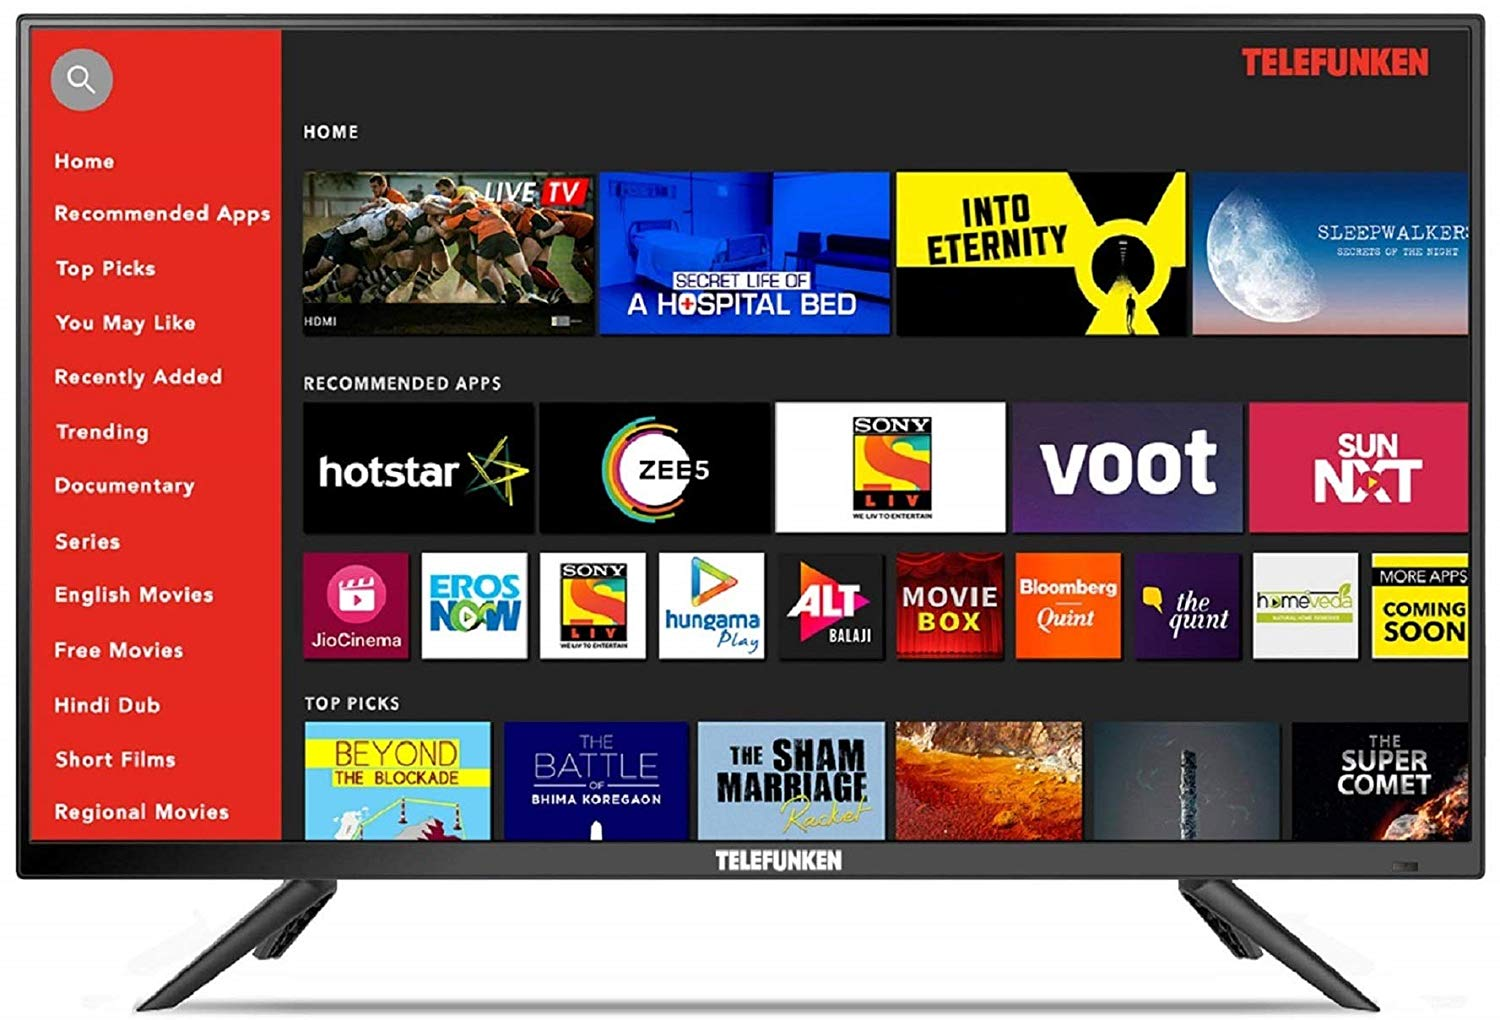 Best Telefunken LED TV series launched in India 2020